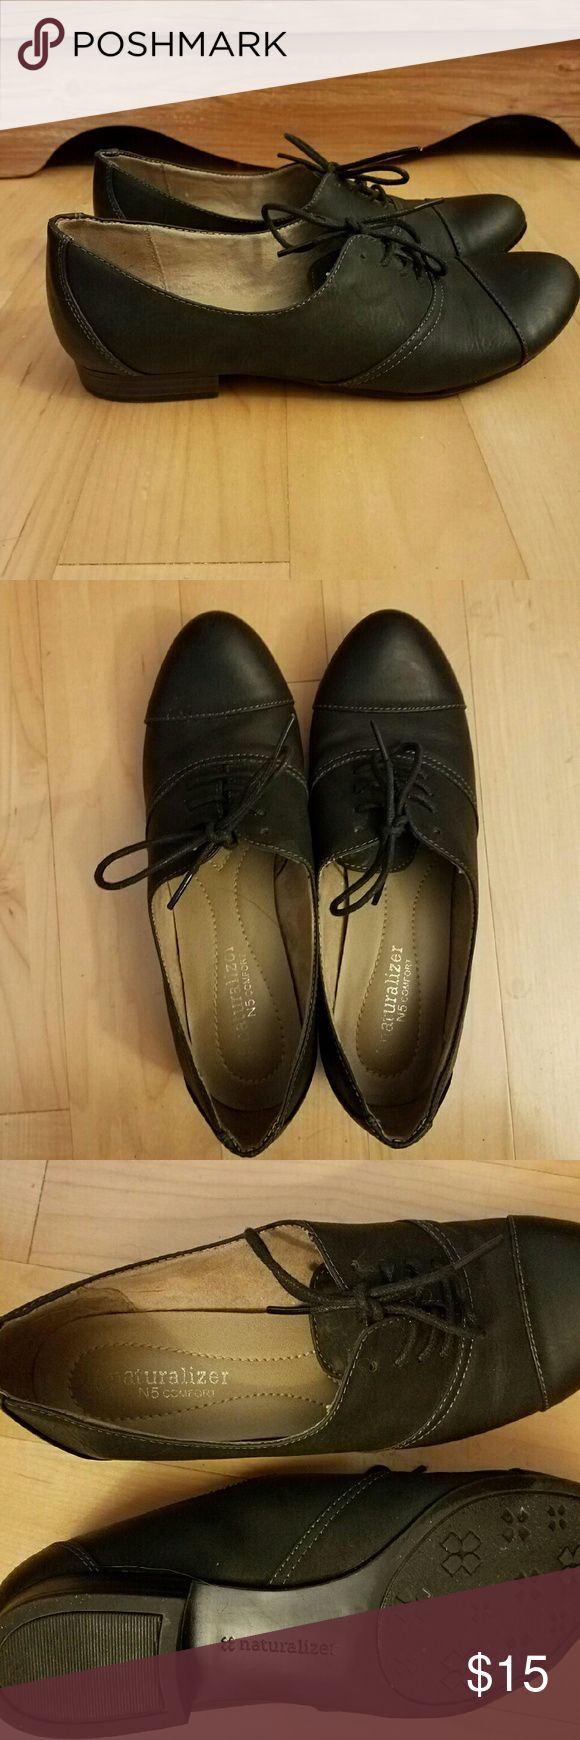 Naturalizer feminine almond toe black oxford They have that padded comfort that Naturalizer is know for with a feminine silhouette. Naturalizer Shoes Flats & Loafers